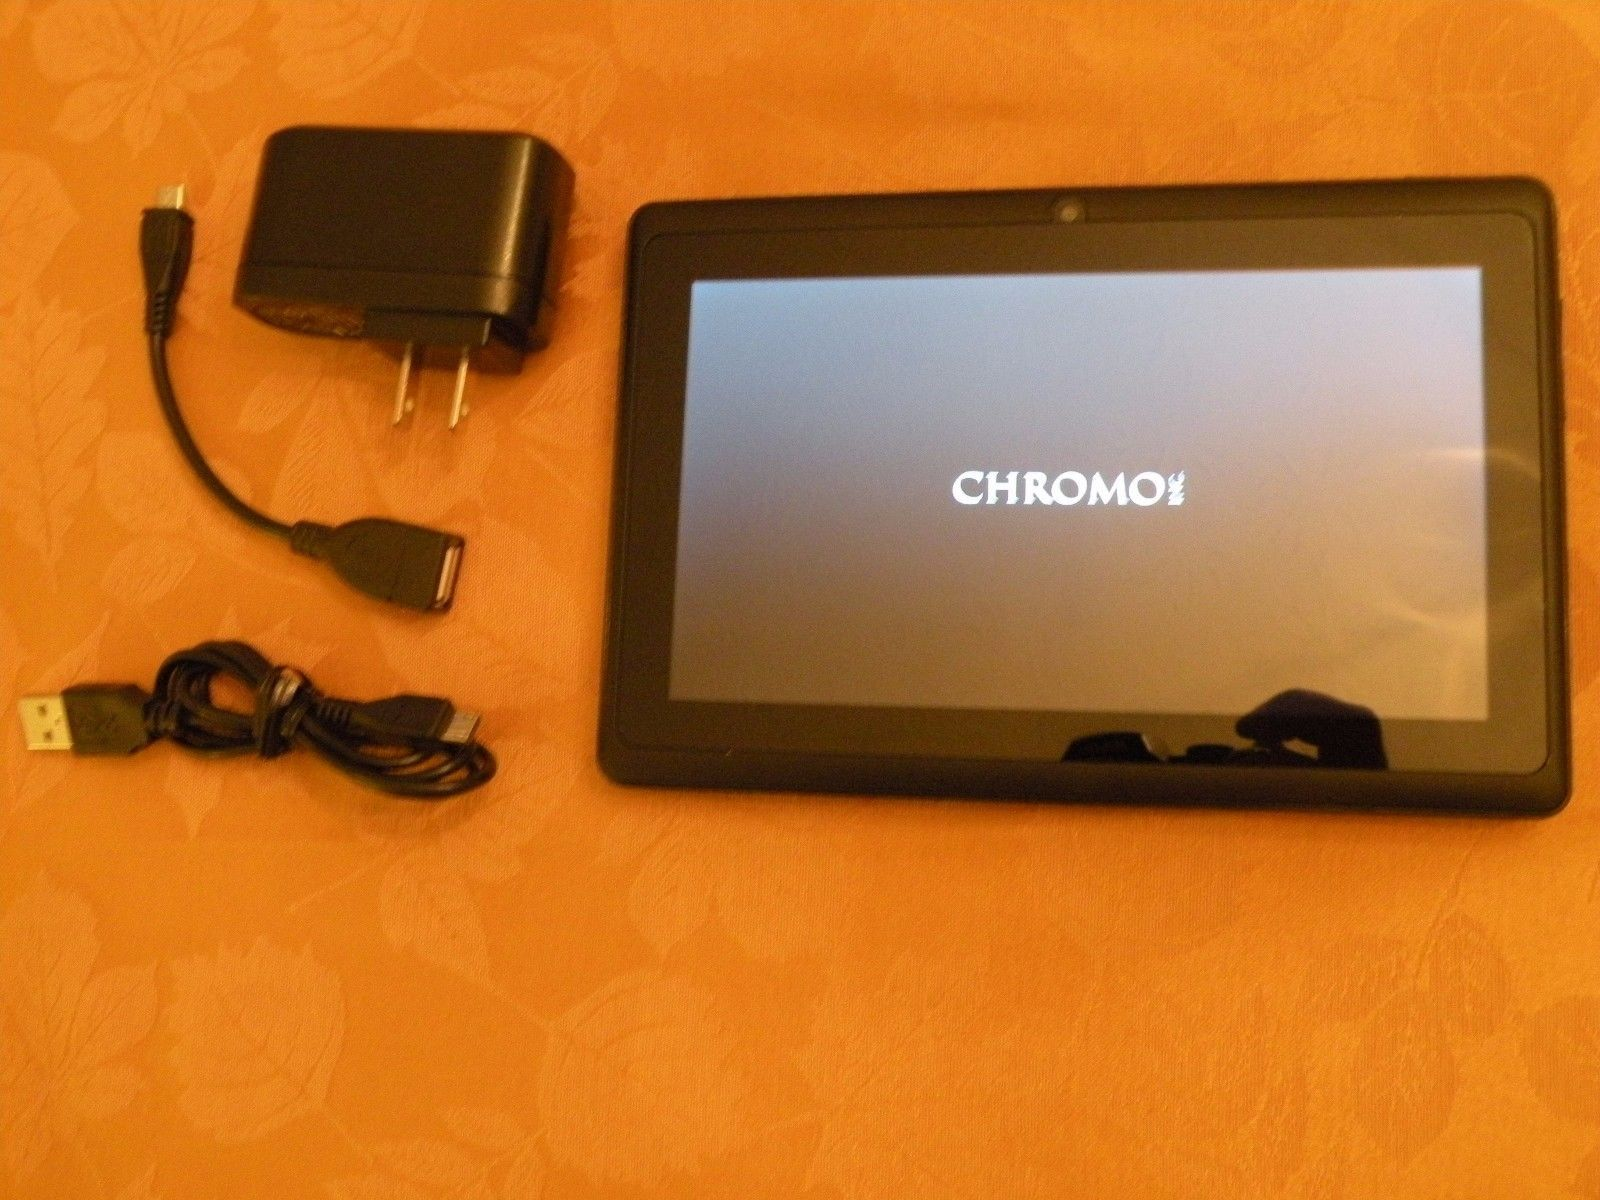 Android Tablet by Chromo 4GB Dual Core Processor in Black https://t.co/nuLTCv8FQ2 https://t.co/XdZpinNUgi